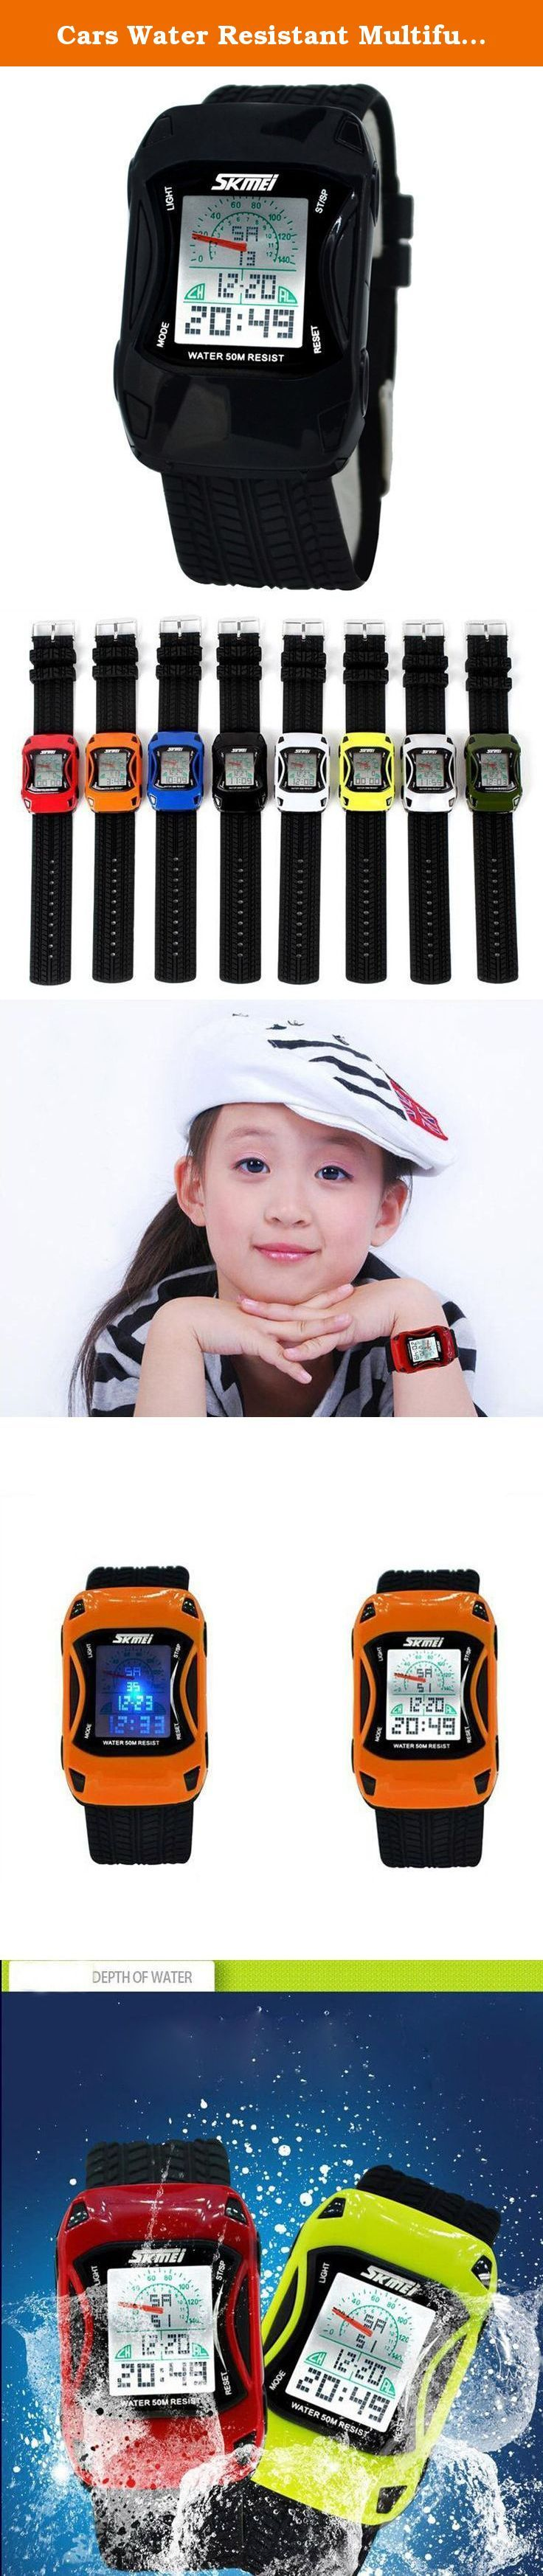 Cars Water Resistant Multifunction Climbing Dive LCD Digital Watches Child's Wristwatch- Black. A variety of styles you can choose in our store ! Package Included: 1 x Watch Please Note: 1. Actual color may vary from picture due to computer settings. 2. Find store front of Sunny world, more surprises are waiting for you! Dear Buyer, Thanks for your continuous support to our store, and we are always striving to improve ourselves in terms of service, quality, sourcing, etc. It would be…